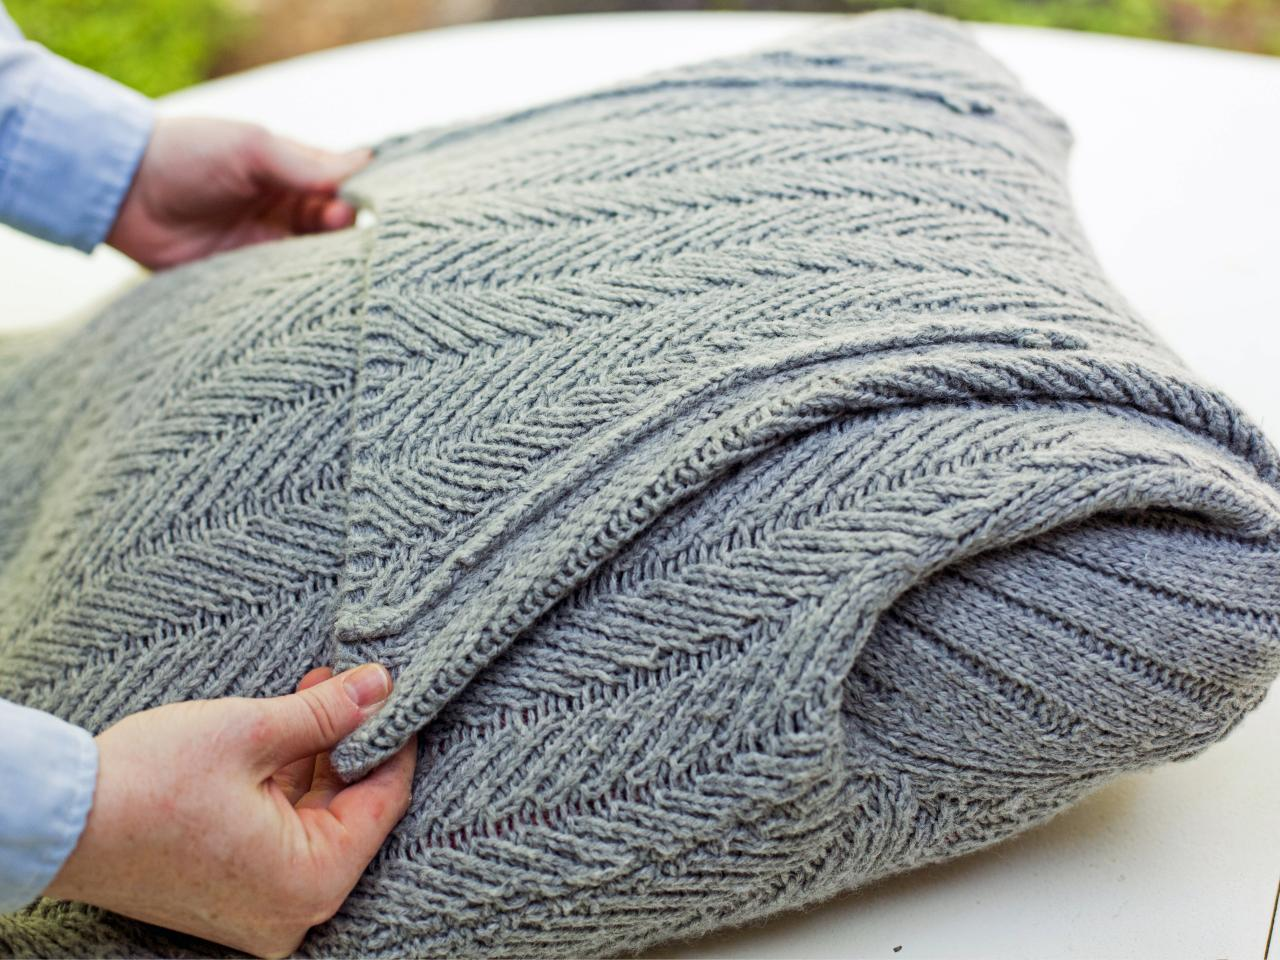 Turn an Old Sweater Into a Chic Preppy Pillow  HGTV